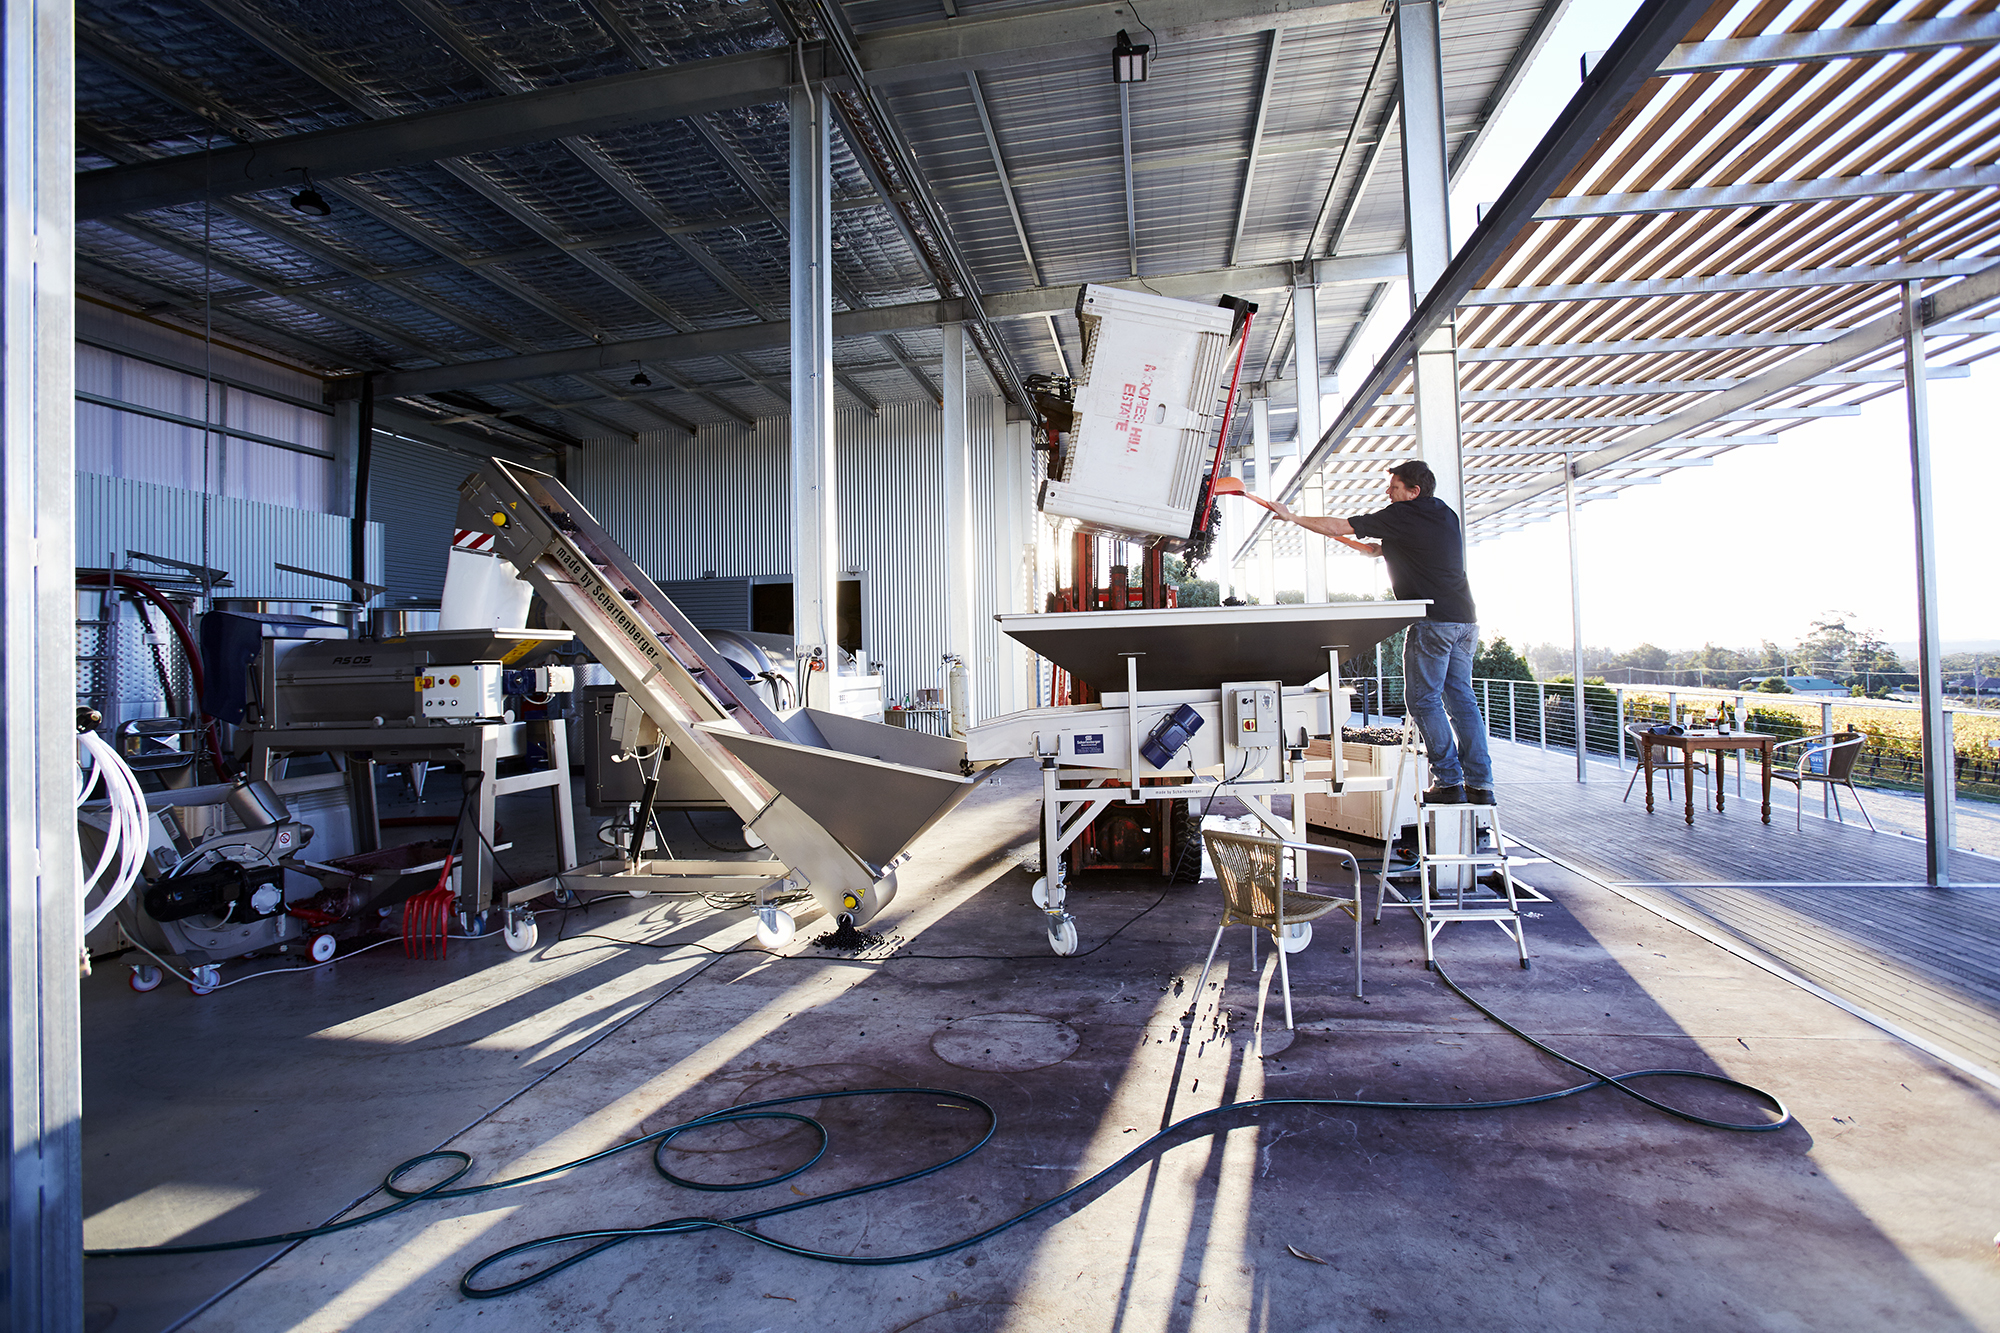 Making wine powered by the sun at Moores Hill